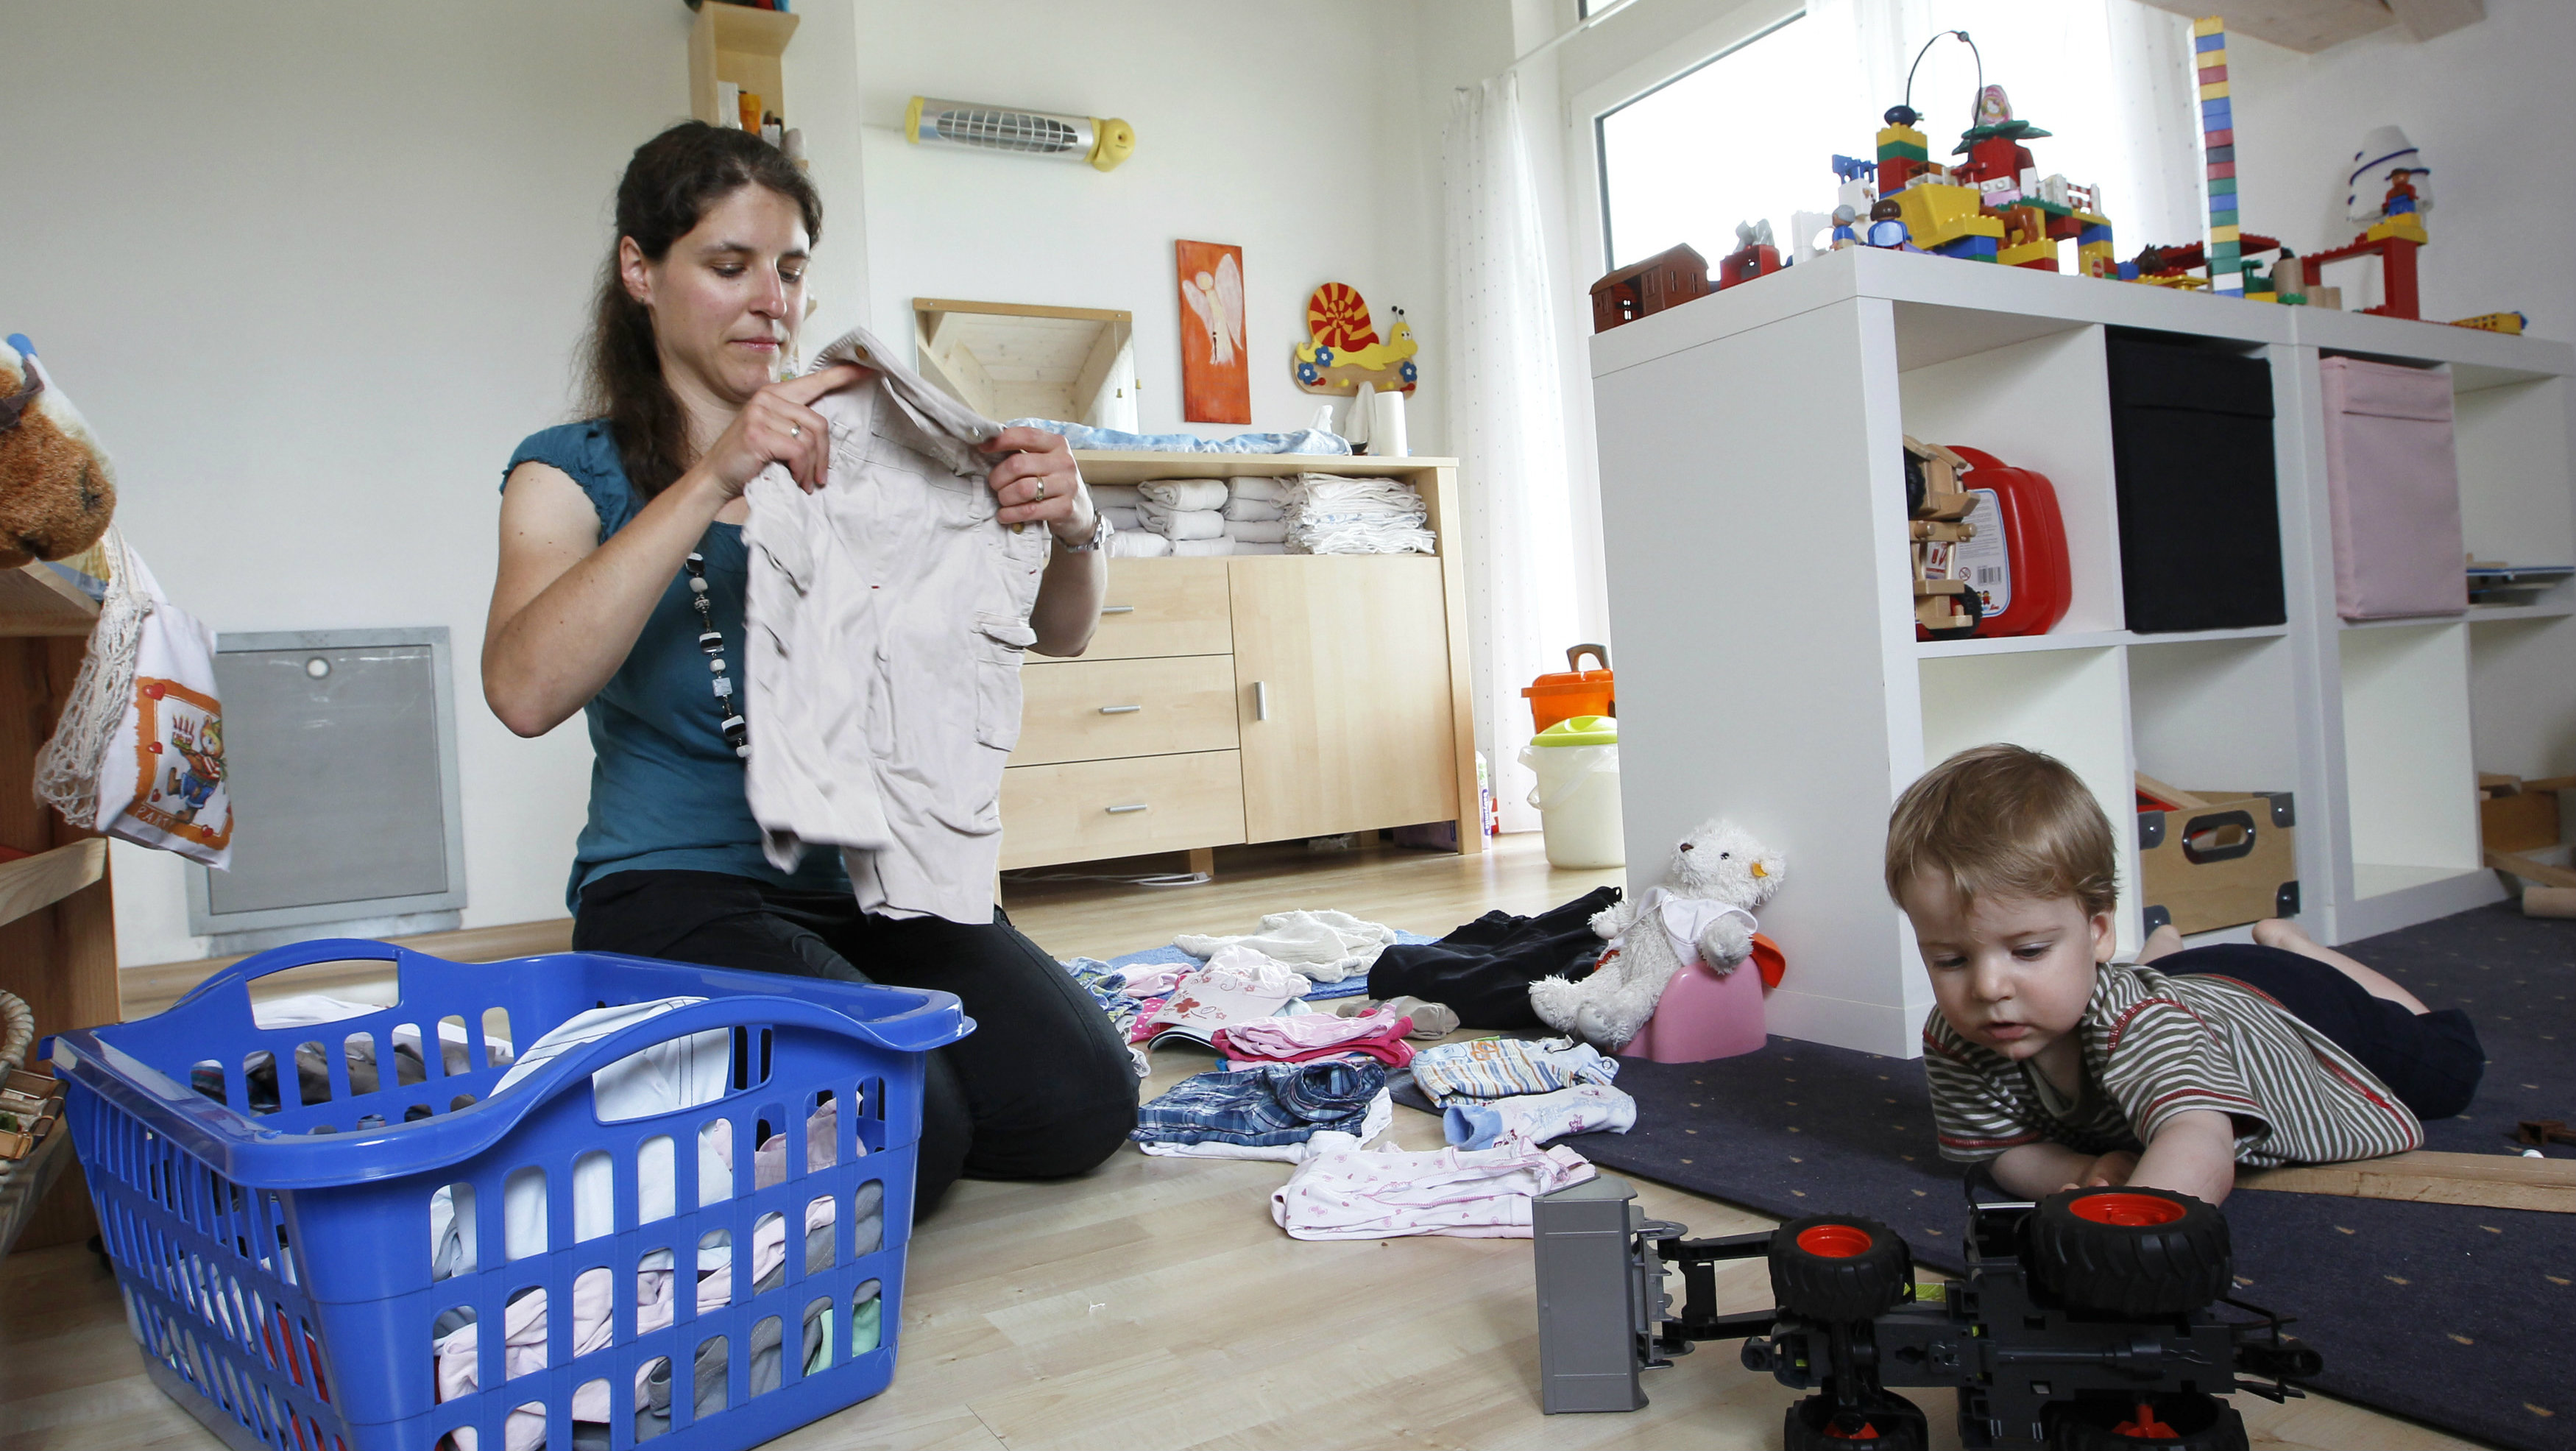 A woman folds clothes in the playroom next to her son.